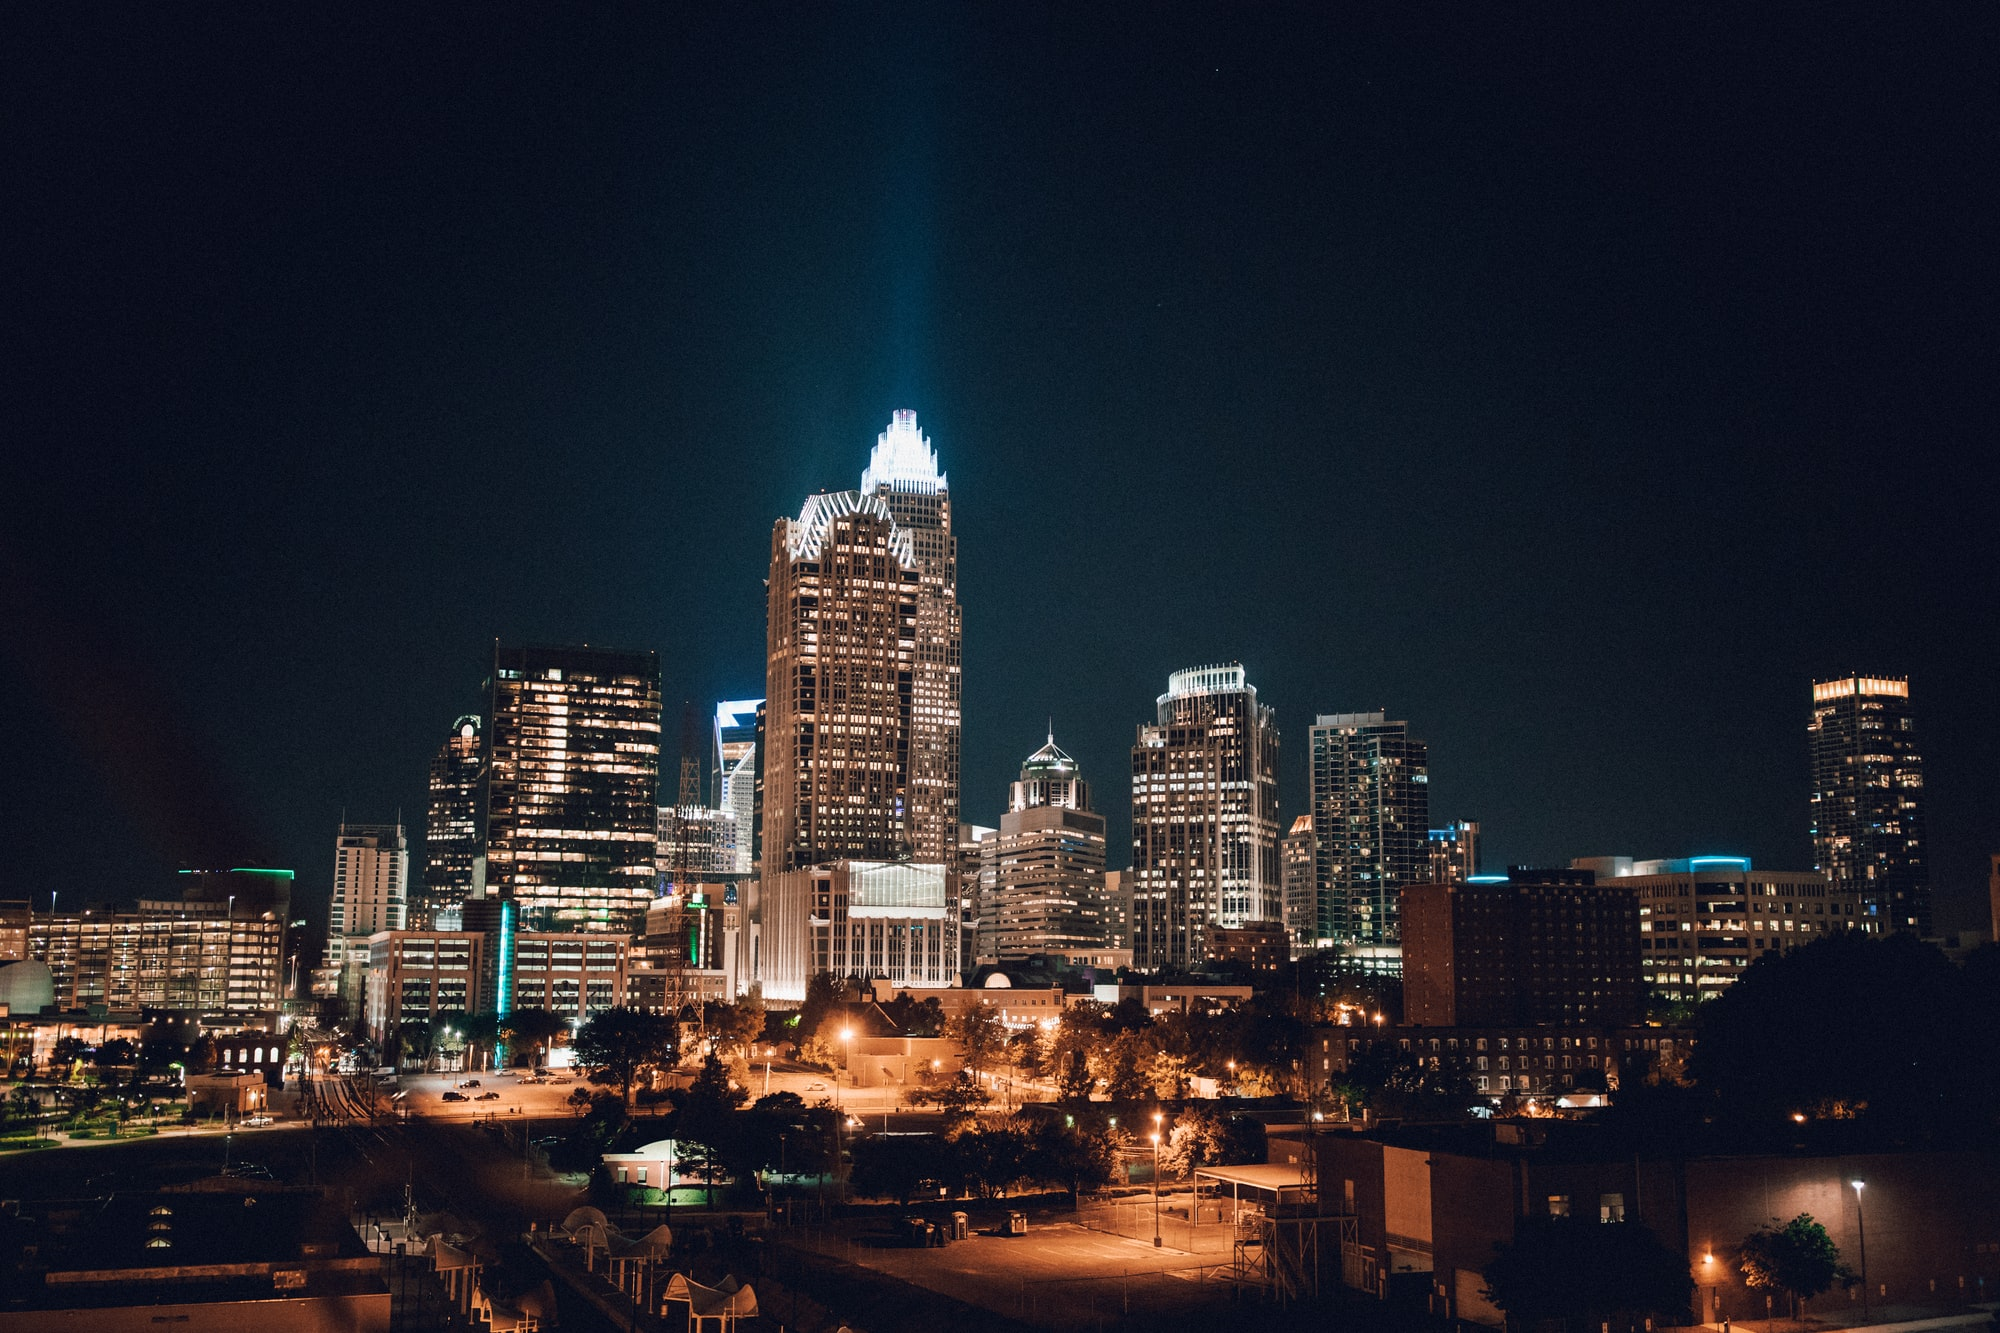 Uptown Charlotte, NC at night.